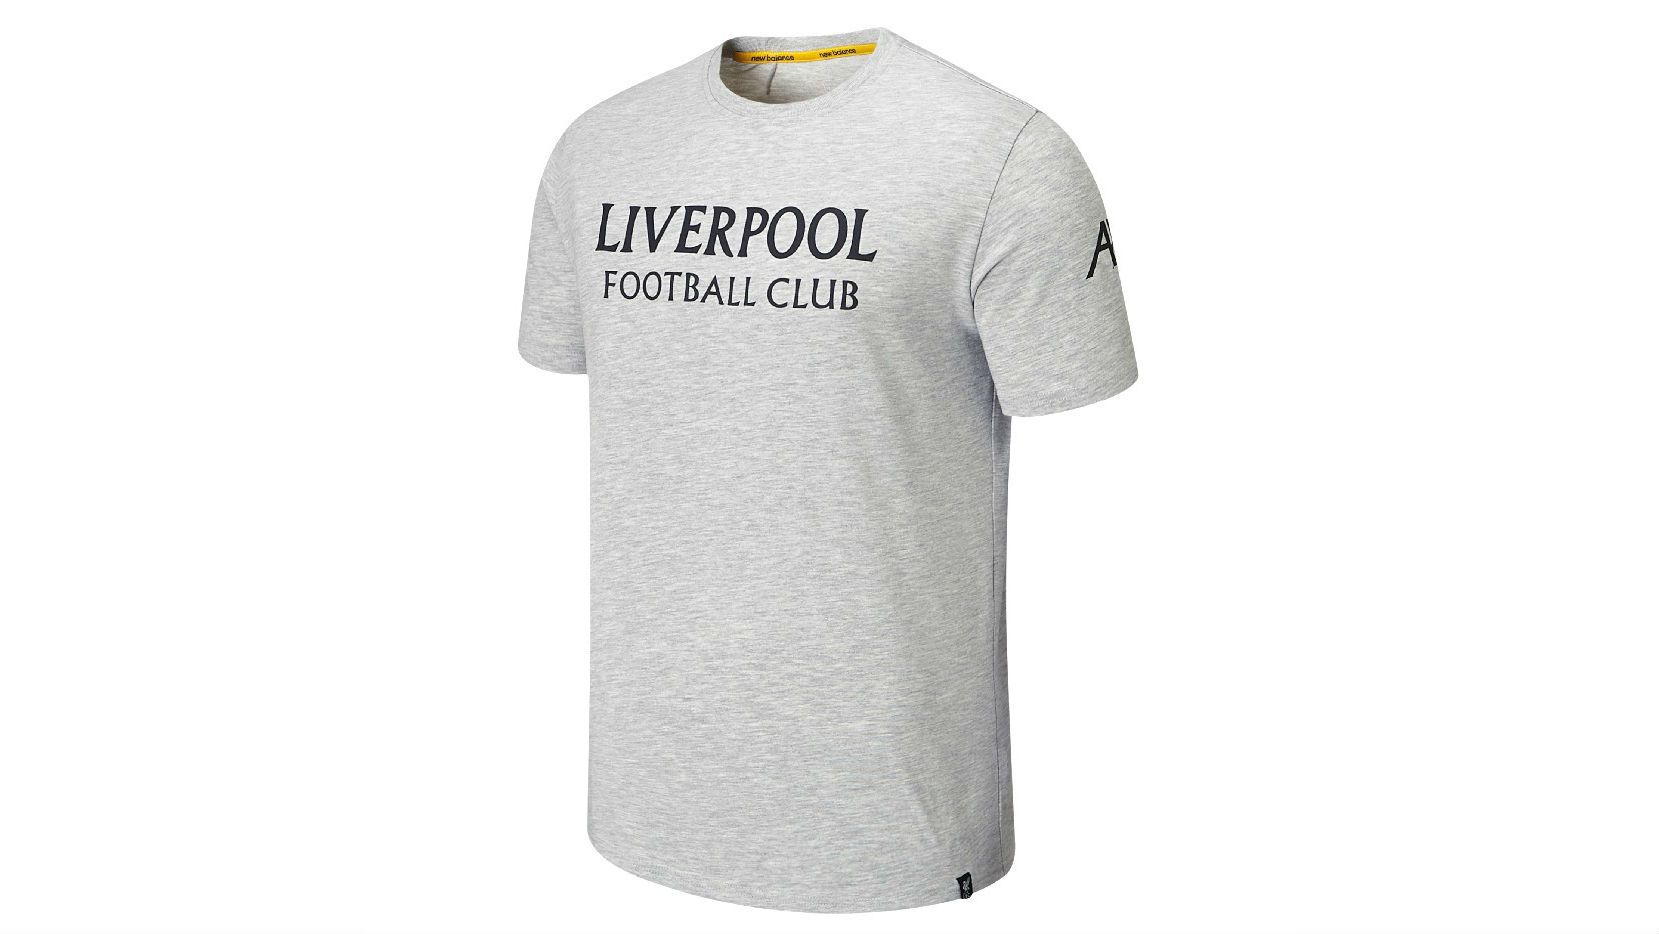 LIVERPOOL FC TRAVEL GRAPHIC TEE